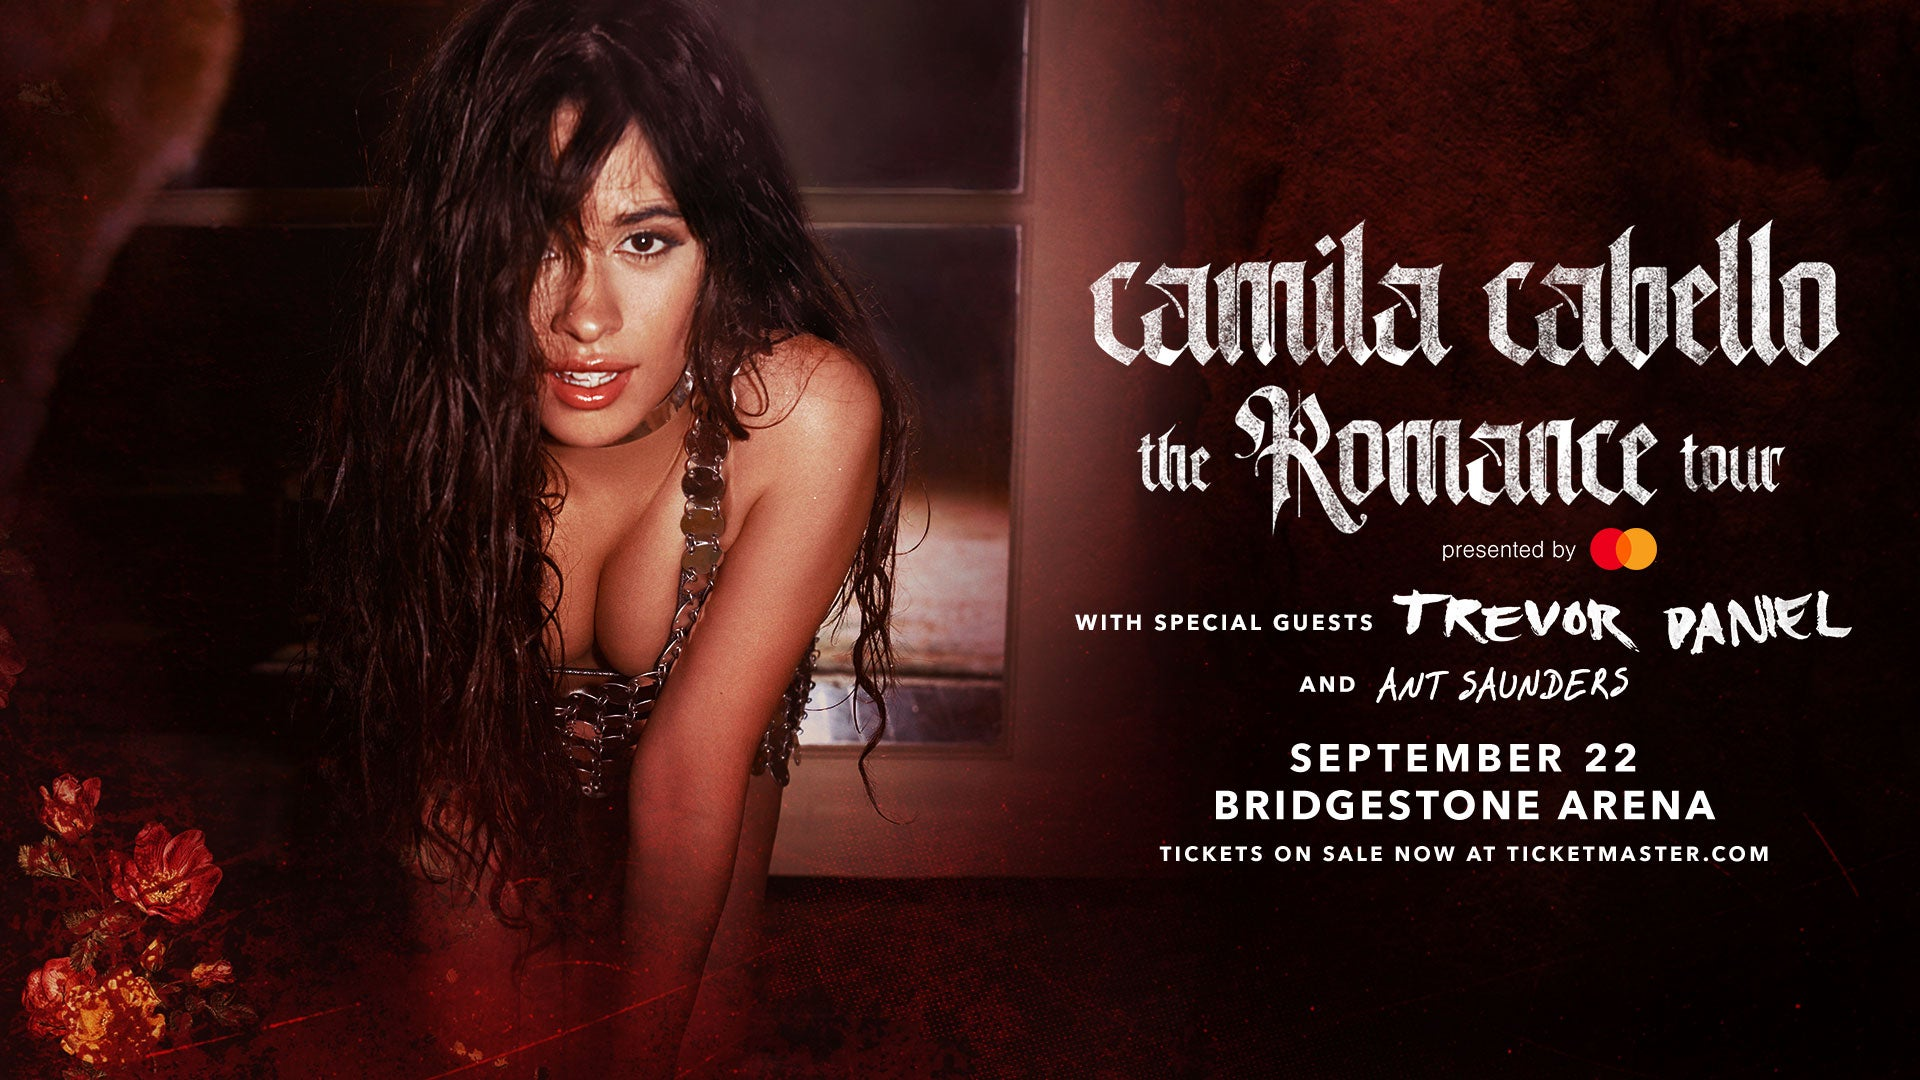 More Info for CANCELED: Camila Cabello